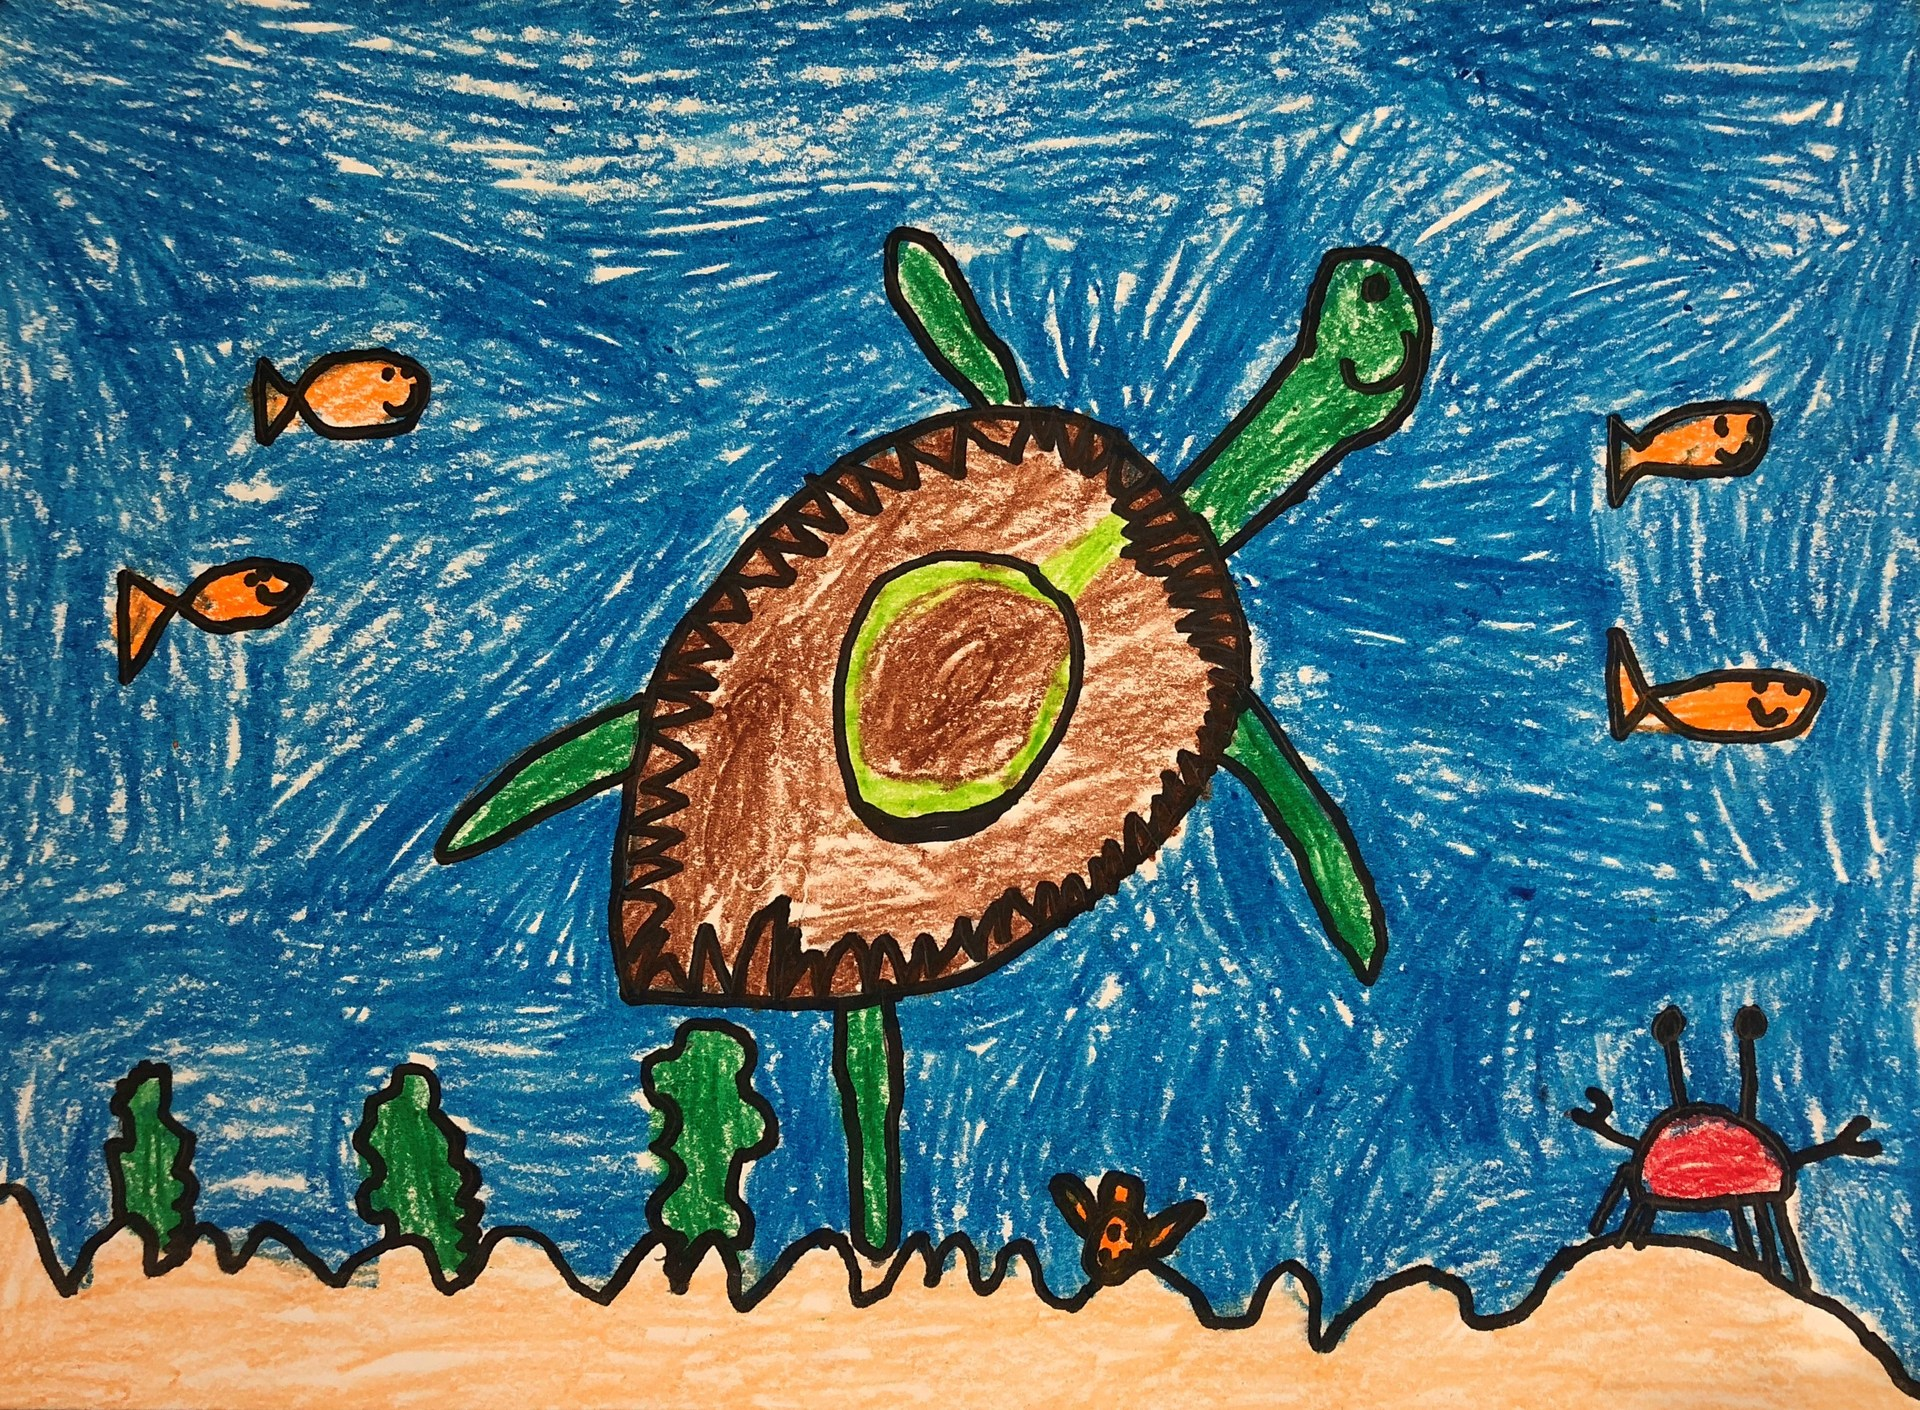 Painting of a turtle